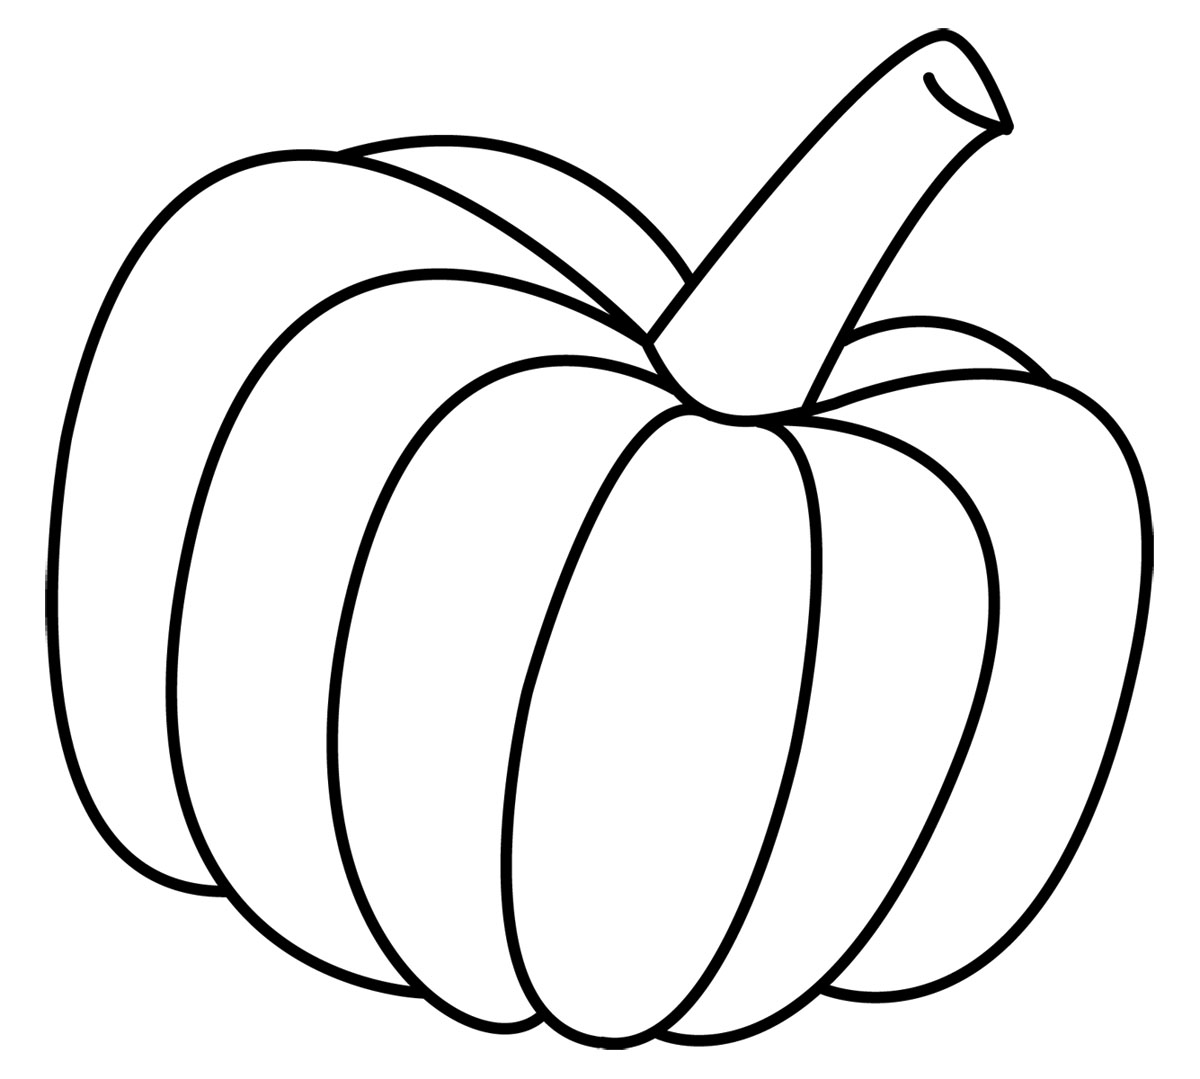 Pumpkin coloring pages for kids - Download Pumpkin Coloring Pages 2